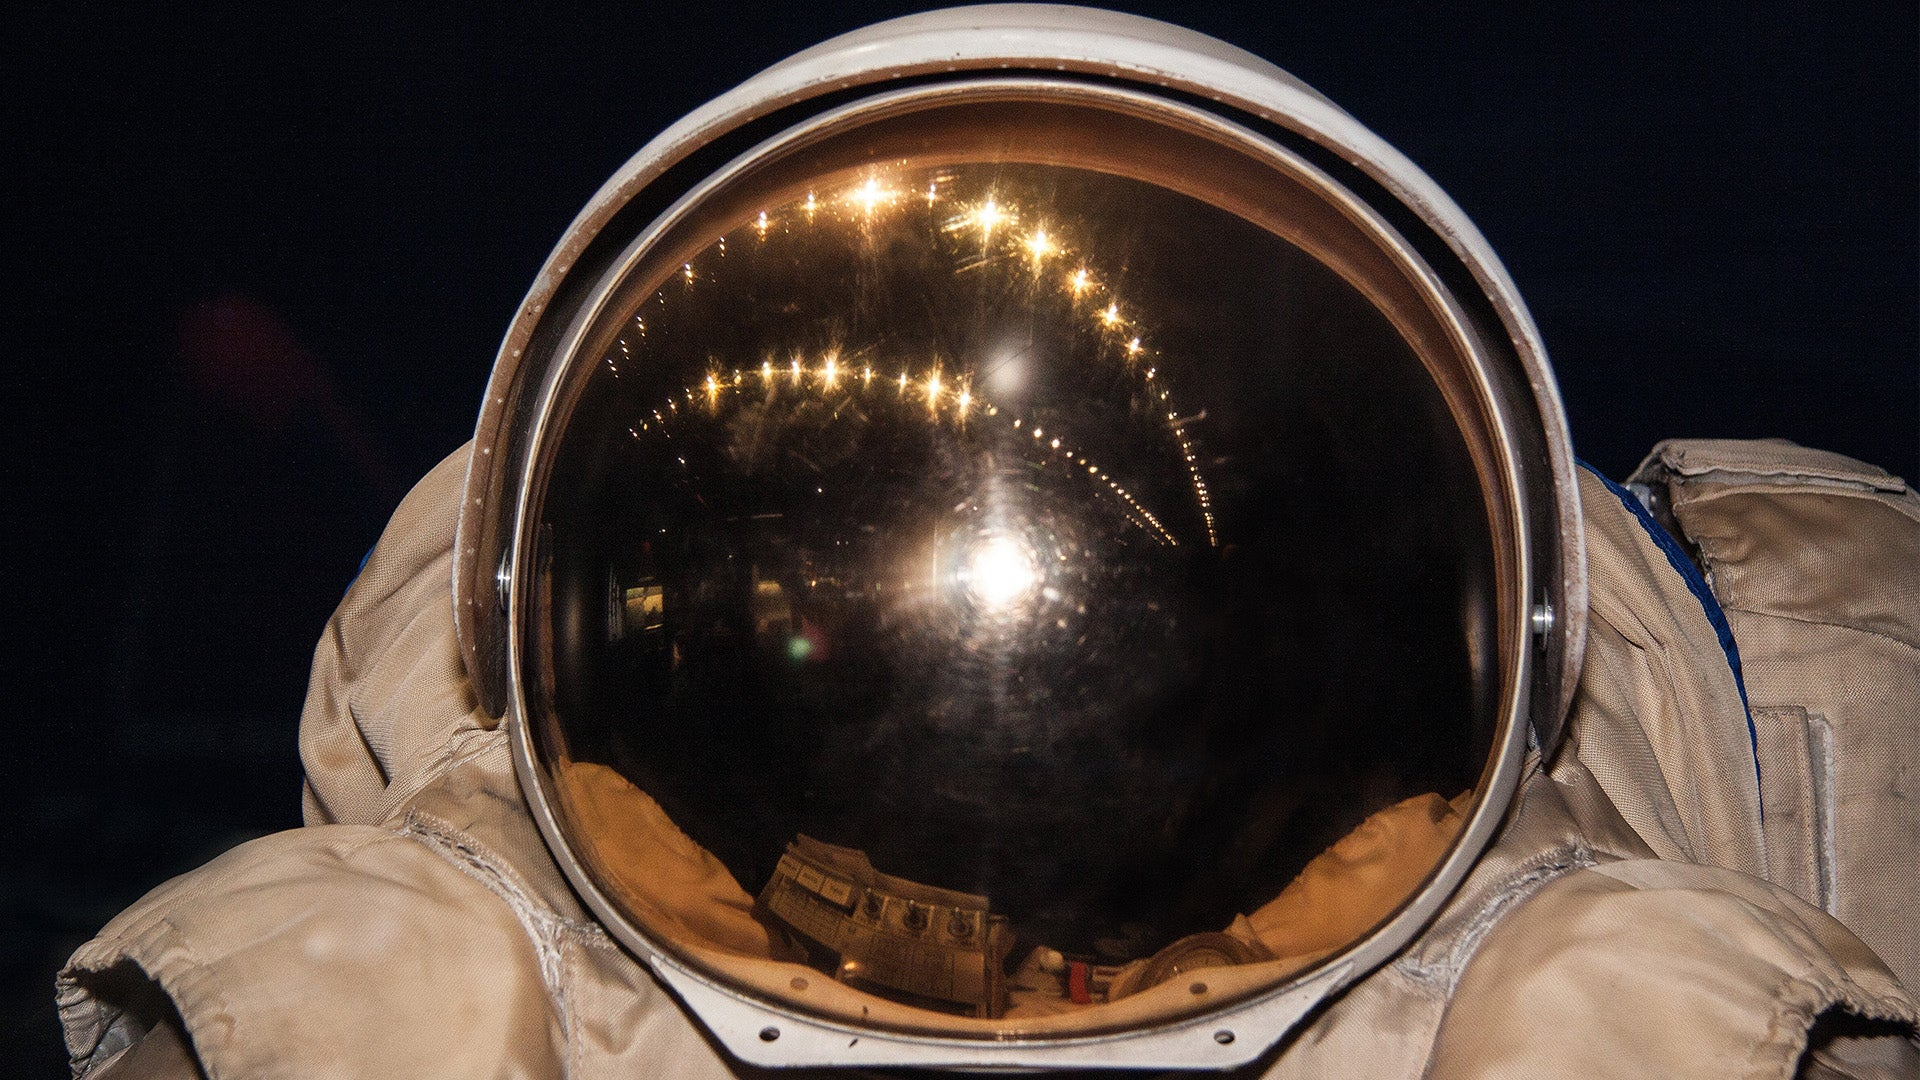 A close-up picture of an astronaut's helmet